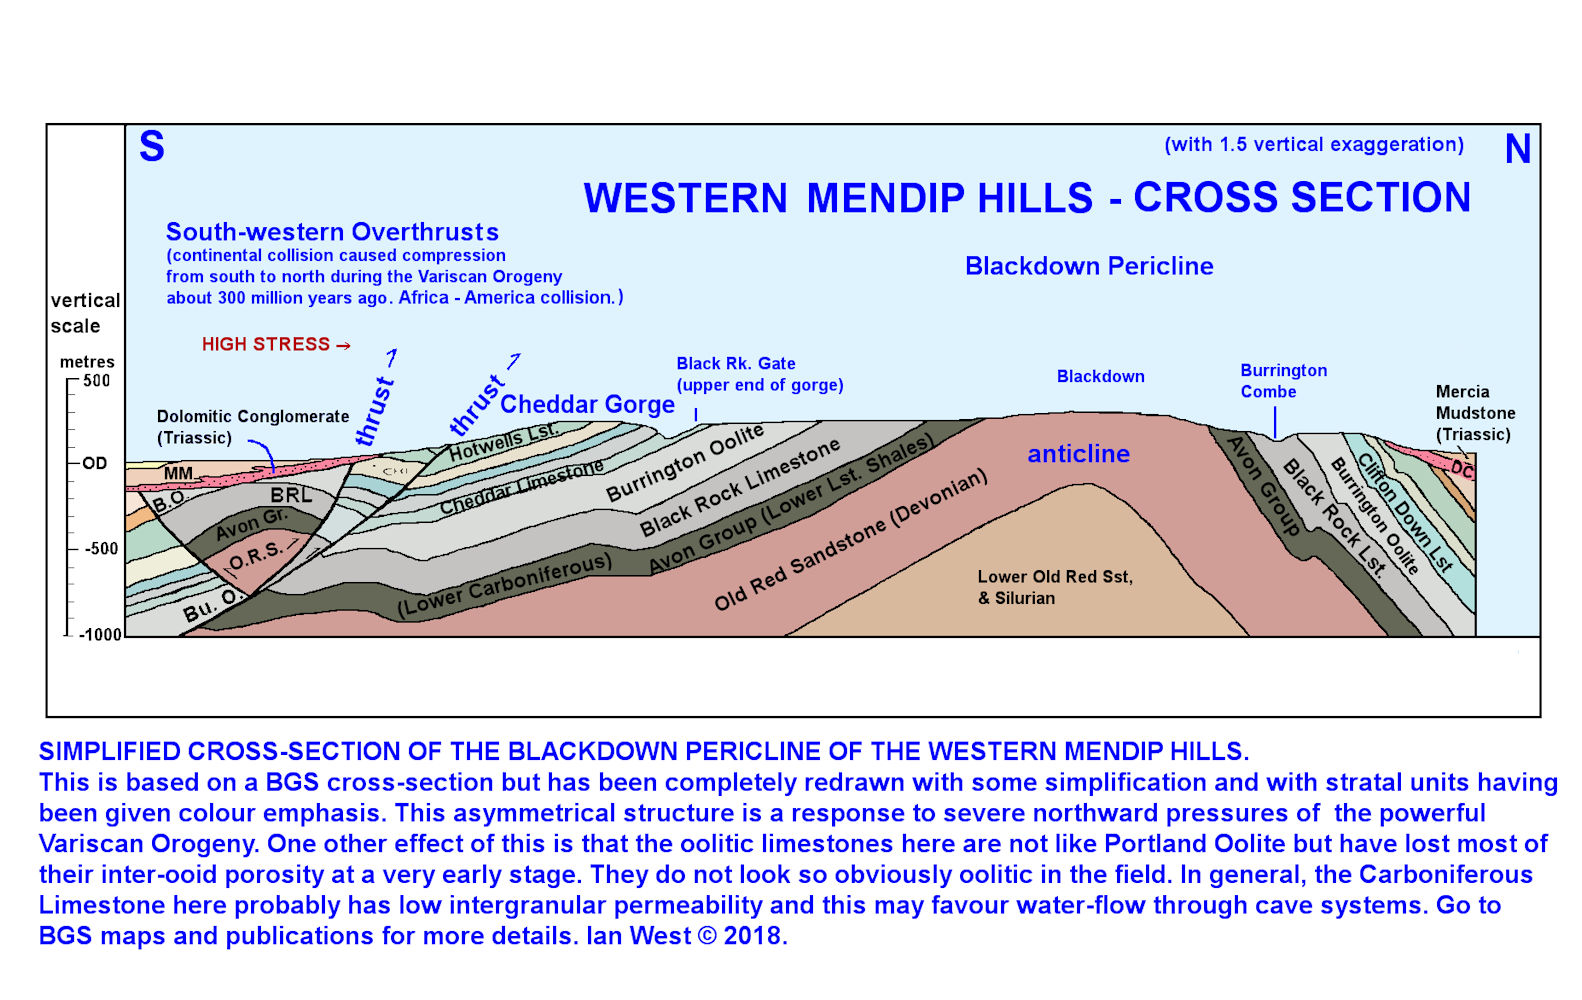 A geological, north-south, cross-section through the Blackdown Pericline, Mendip Hills, including both Cheddar Gorge and Burrington Combe, completely redrawn at different scale after a BGS section